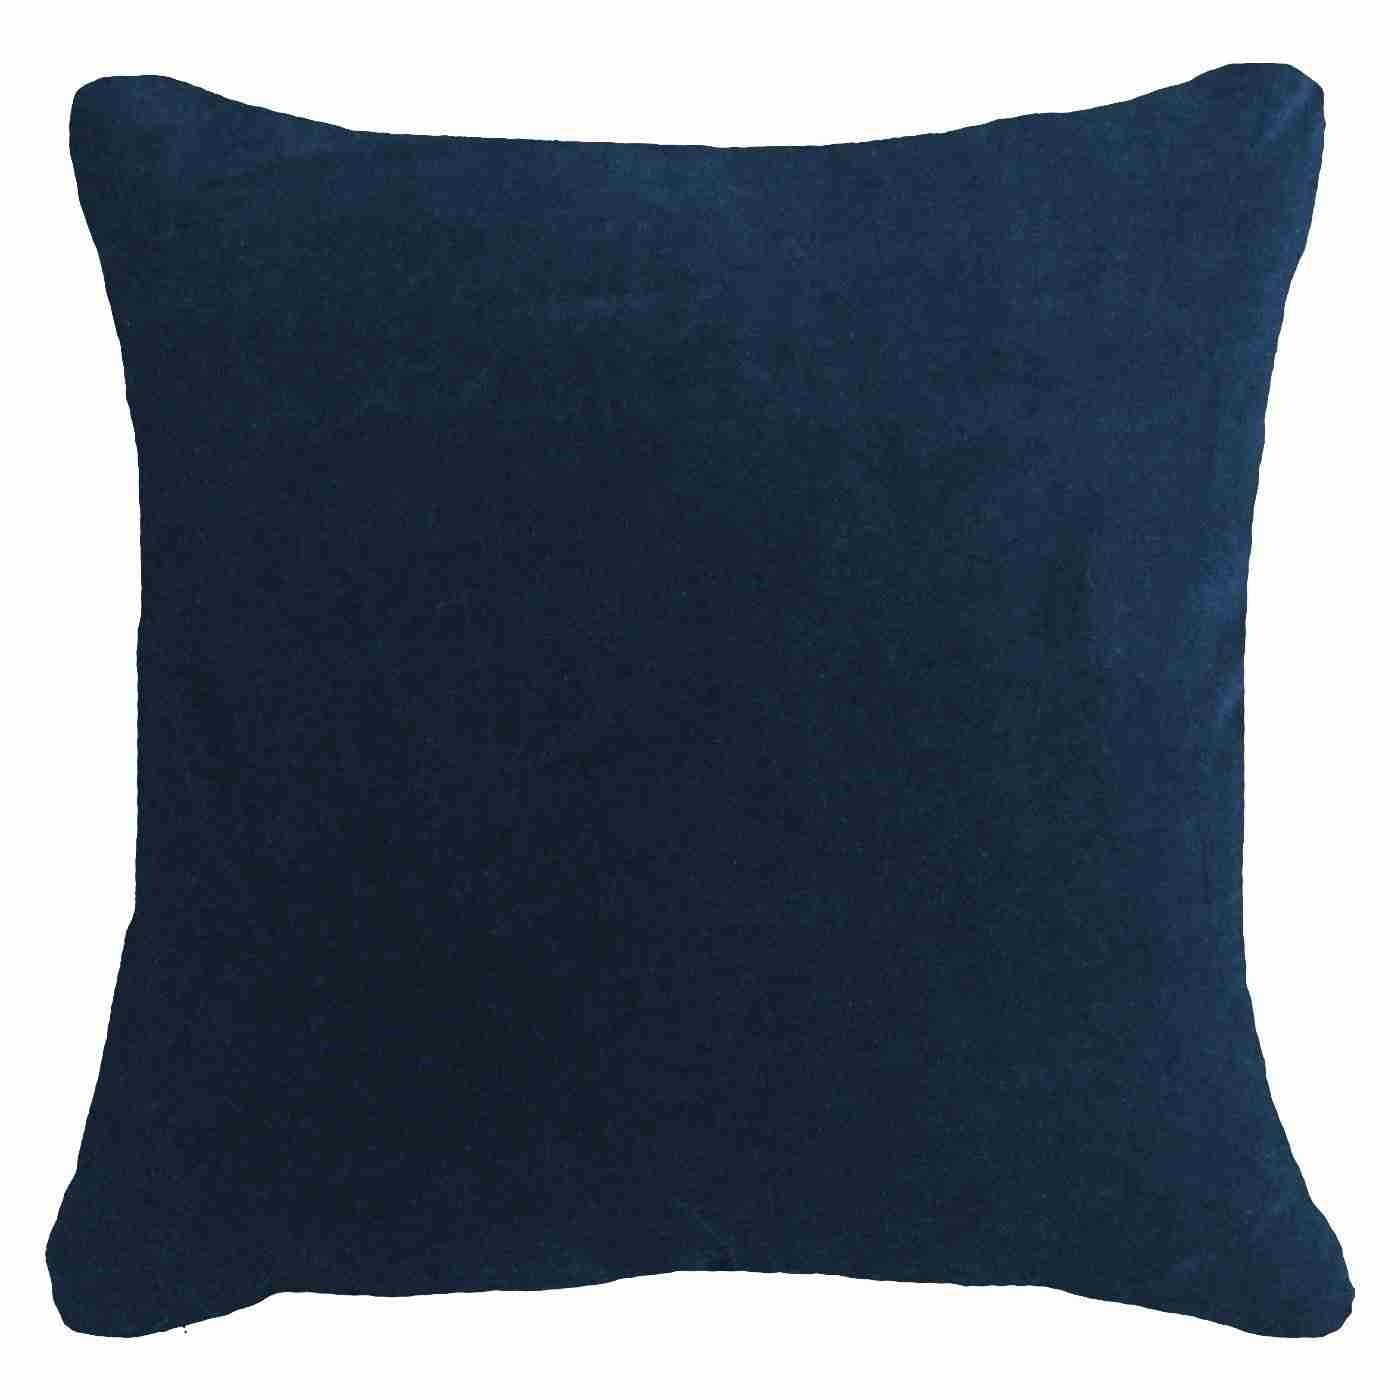 Bandhini Homewear Design Lounge Cushion Navy / 22 x 22 Velvet Navy Lounge Cushion 55 x 55 m